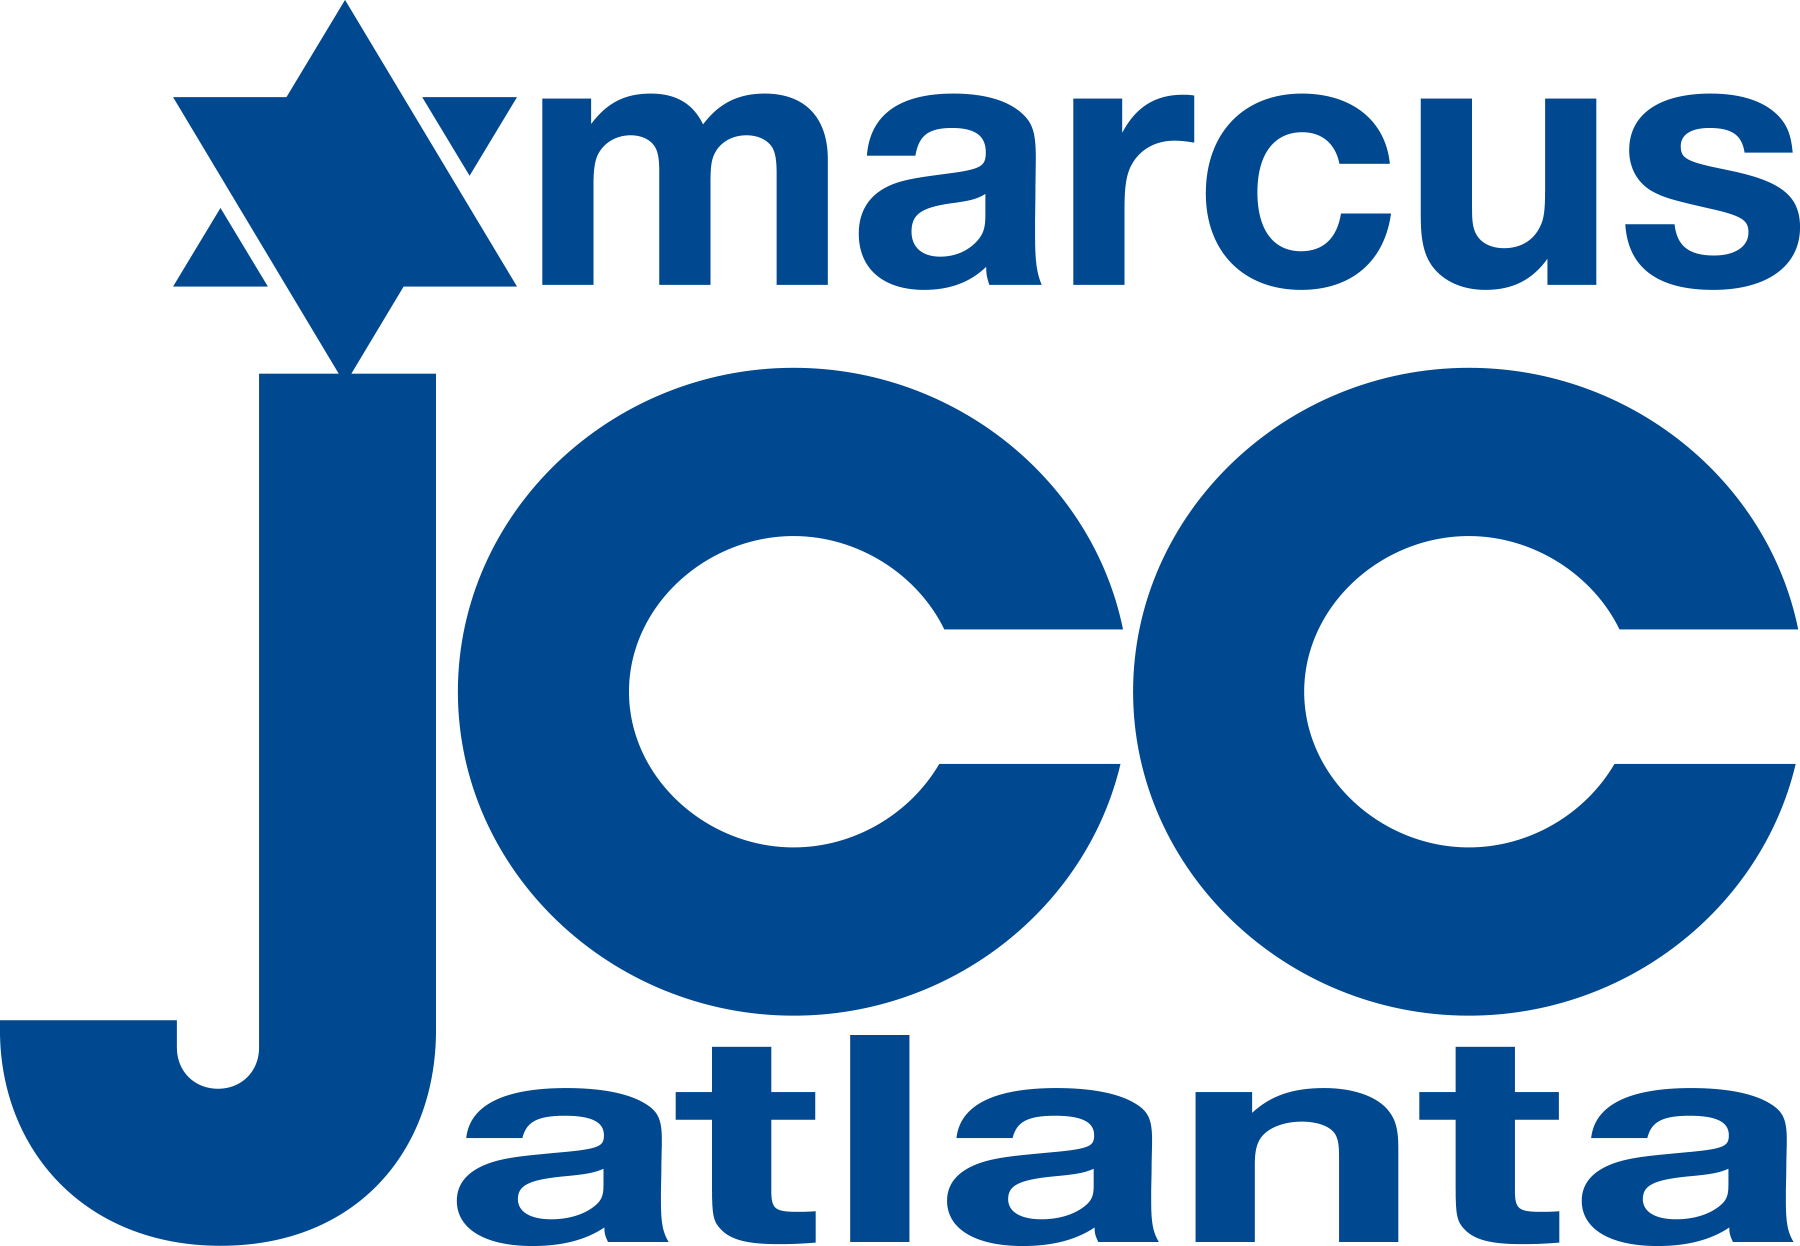 Marcus Jewish Community Center logo